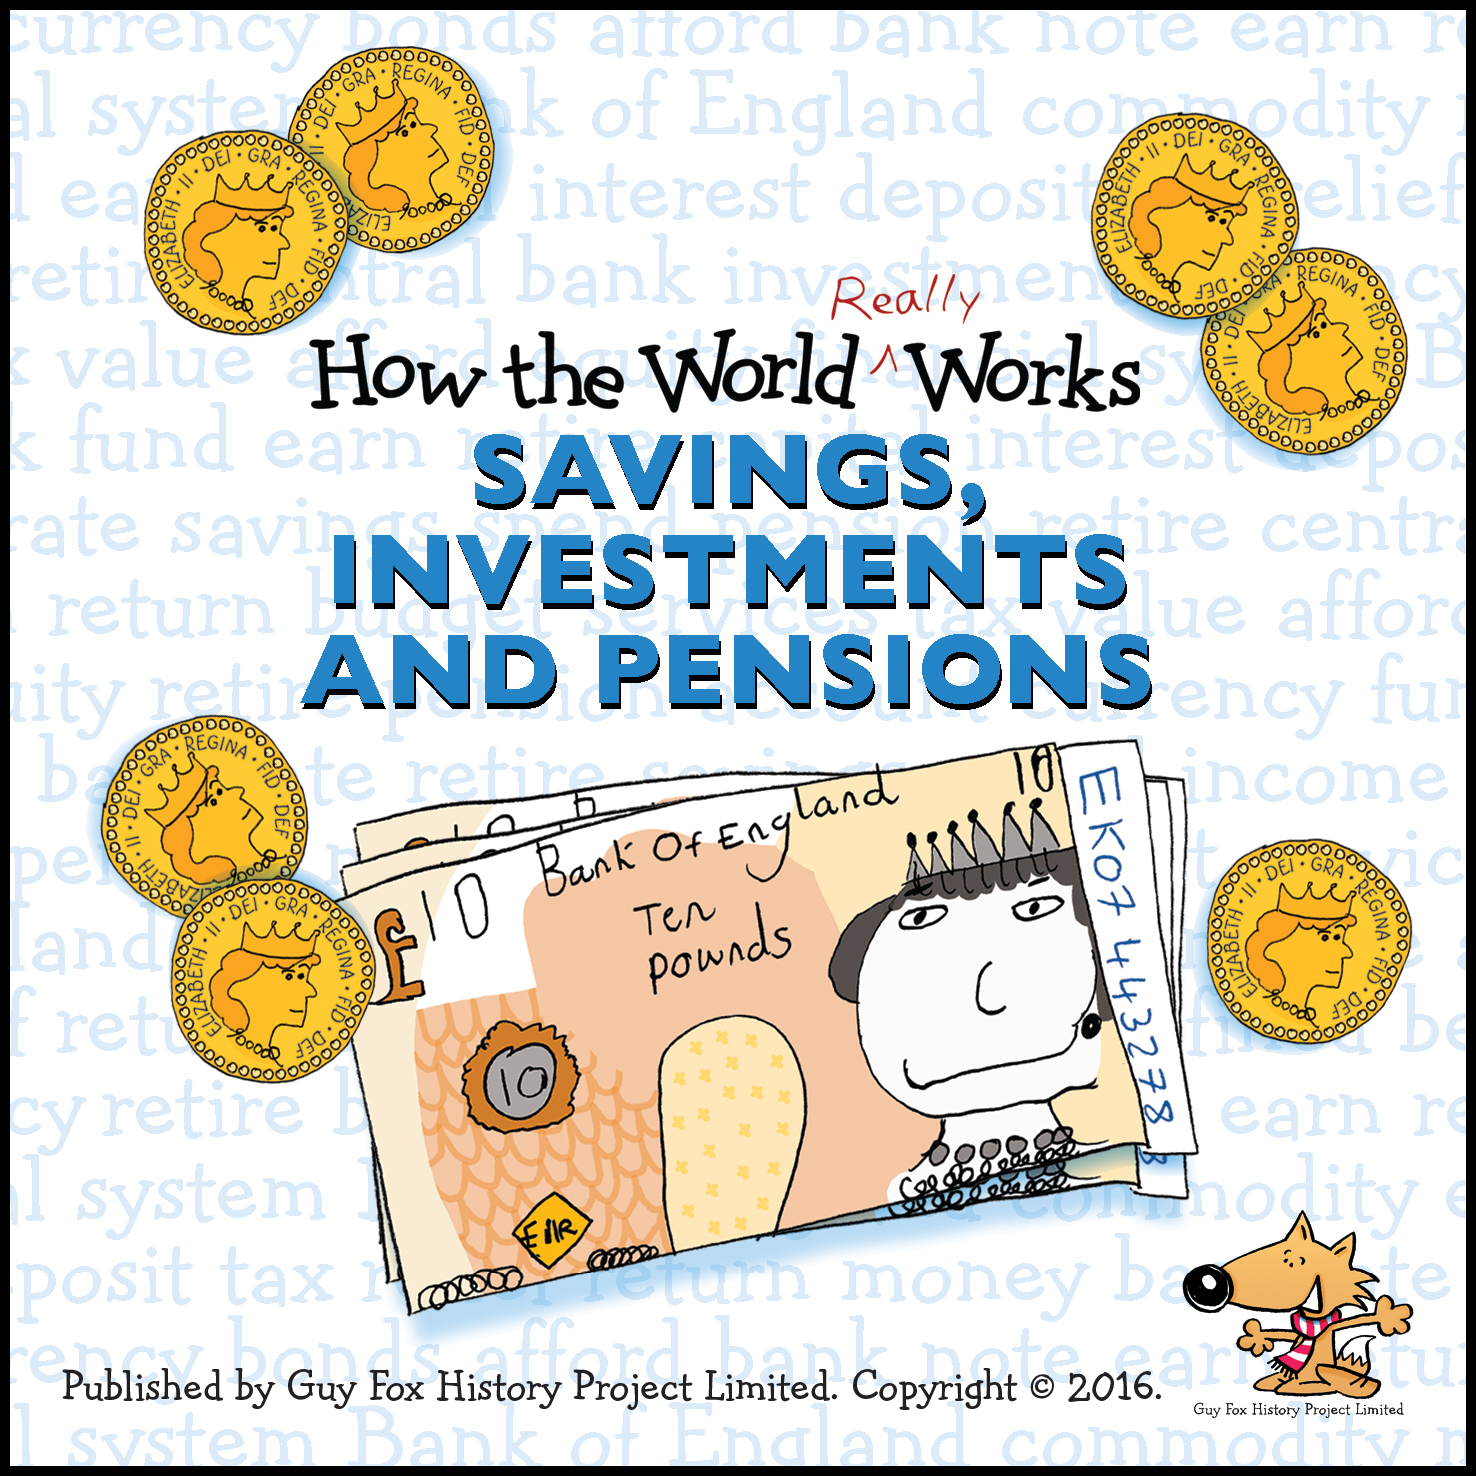 UK Version of 'How the World REALLY Works: Savings Investments and Pensions' Book Cover